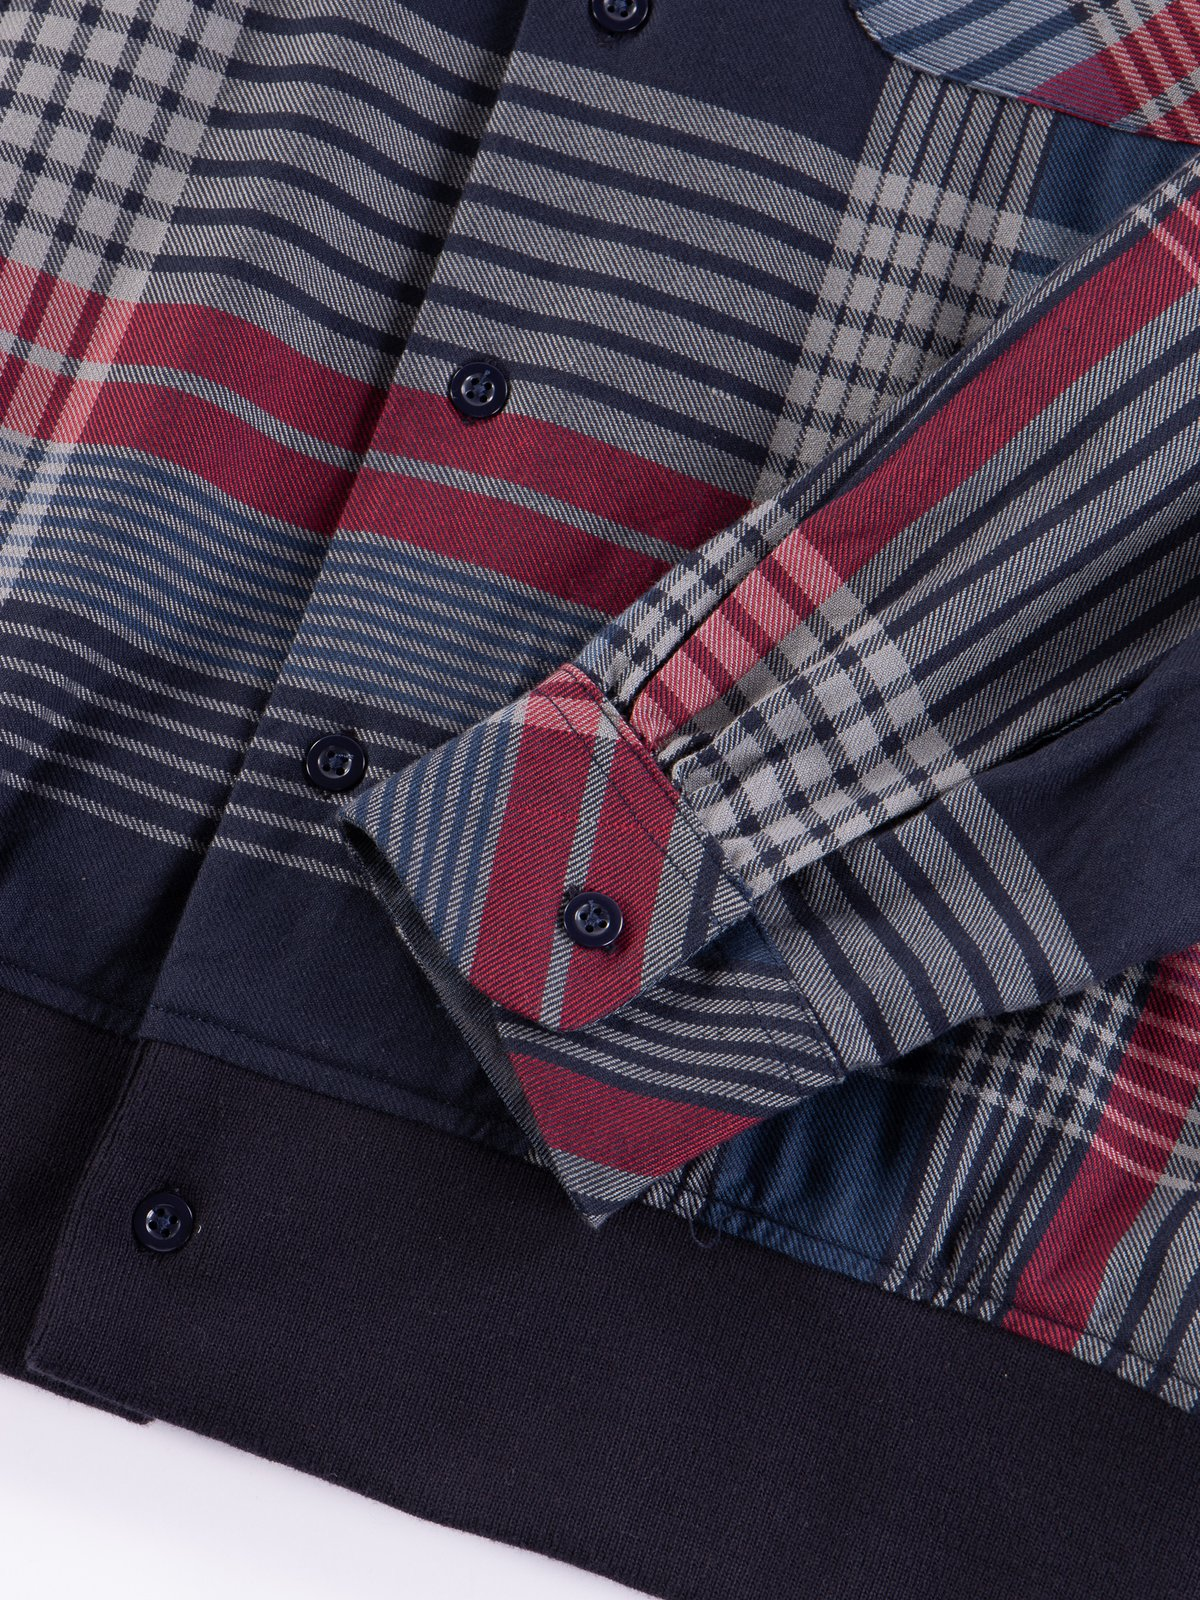 Navy/Grey/Red Cotton Twill Classic Shirt - Image 5